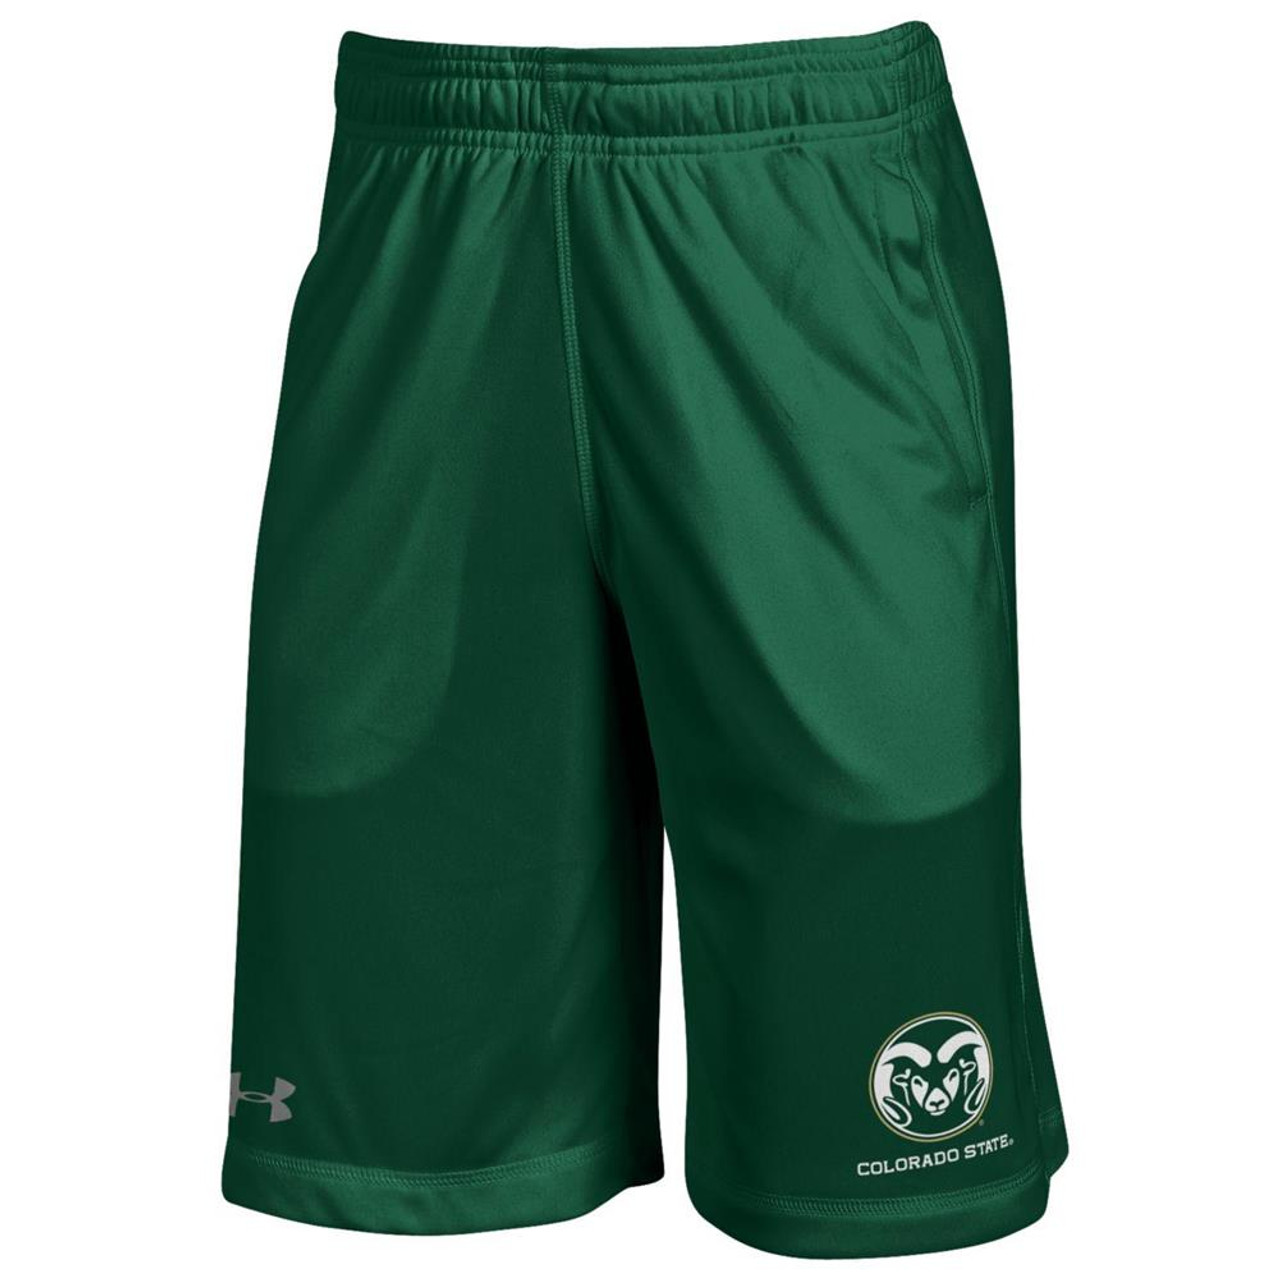 Youth Boys Under Armour Colorado State Rams Training Shorts